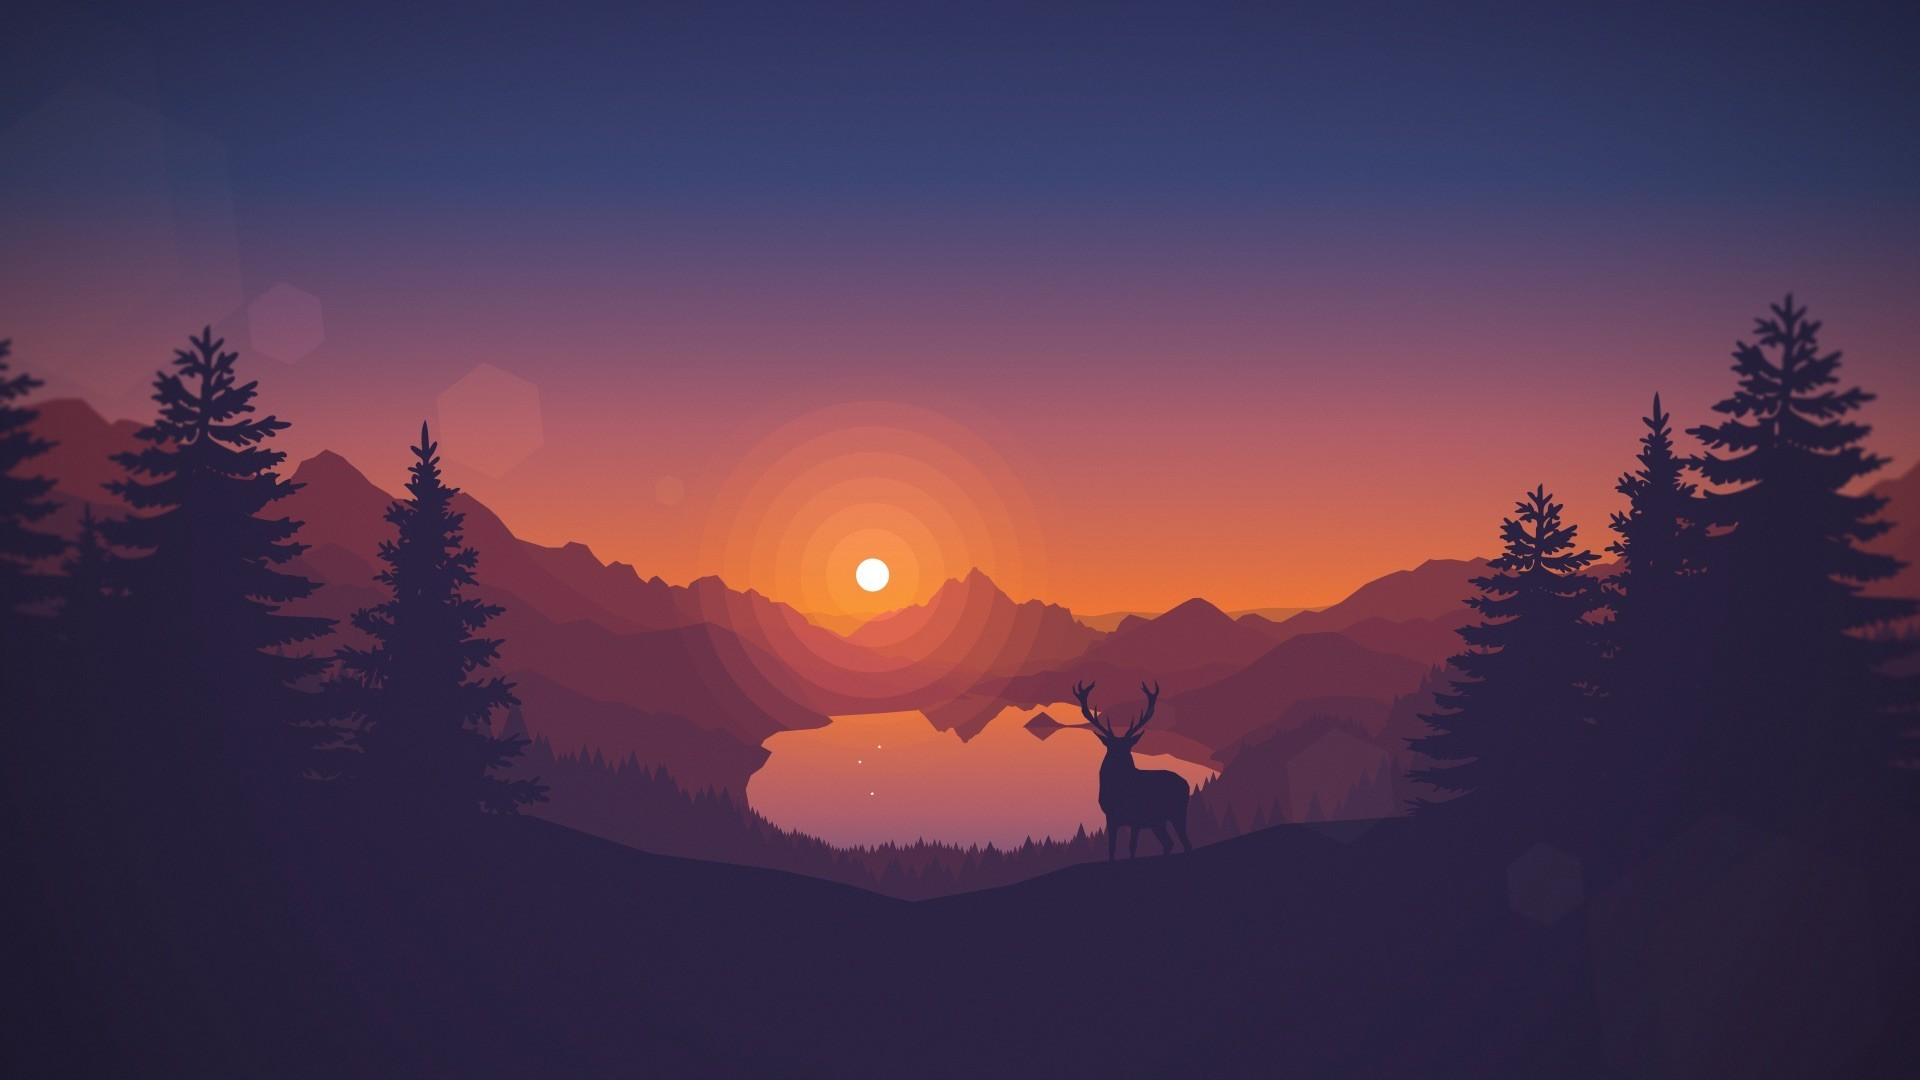 Deer wallpaper download free amazing wallpapers for - 2d nature wallpapers ...